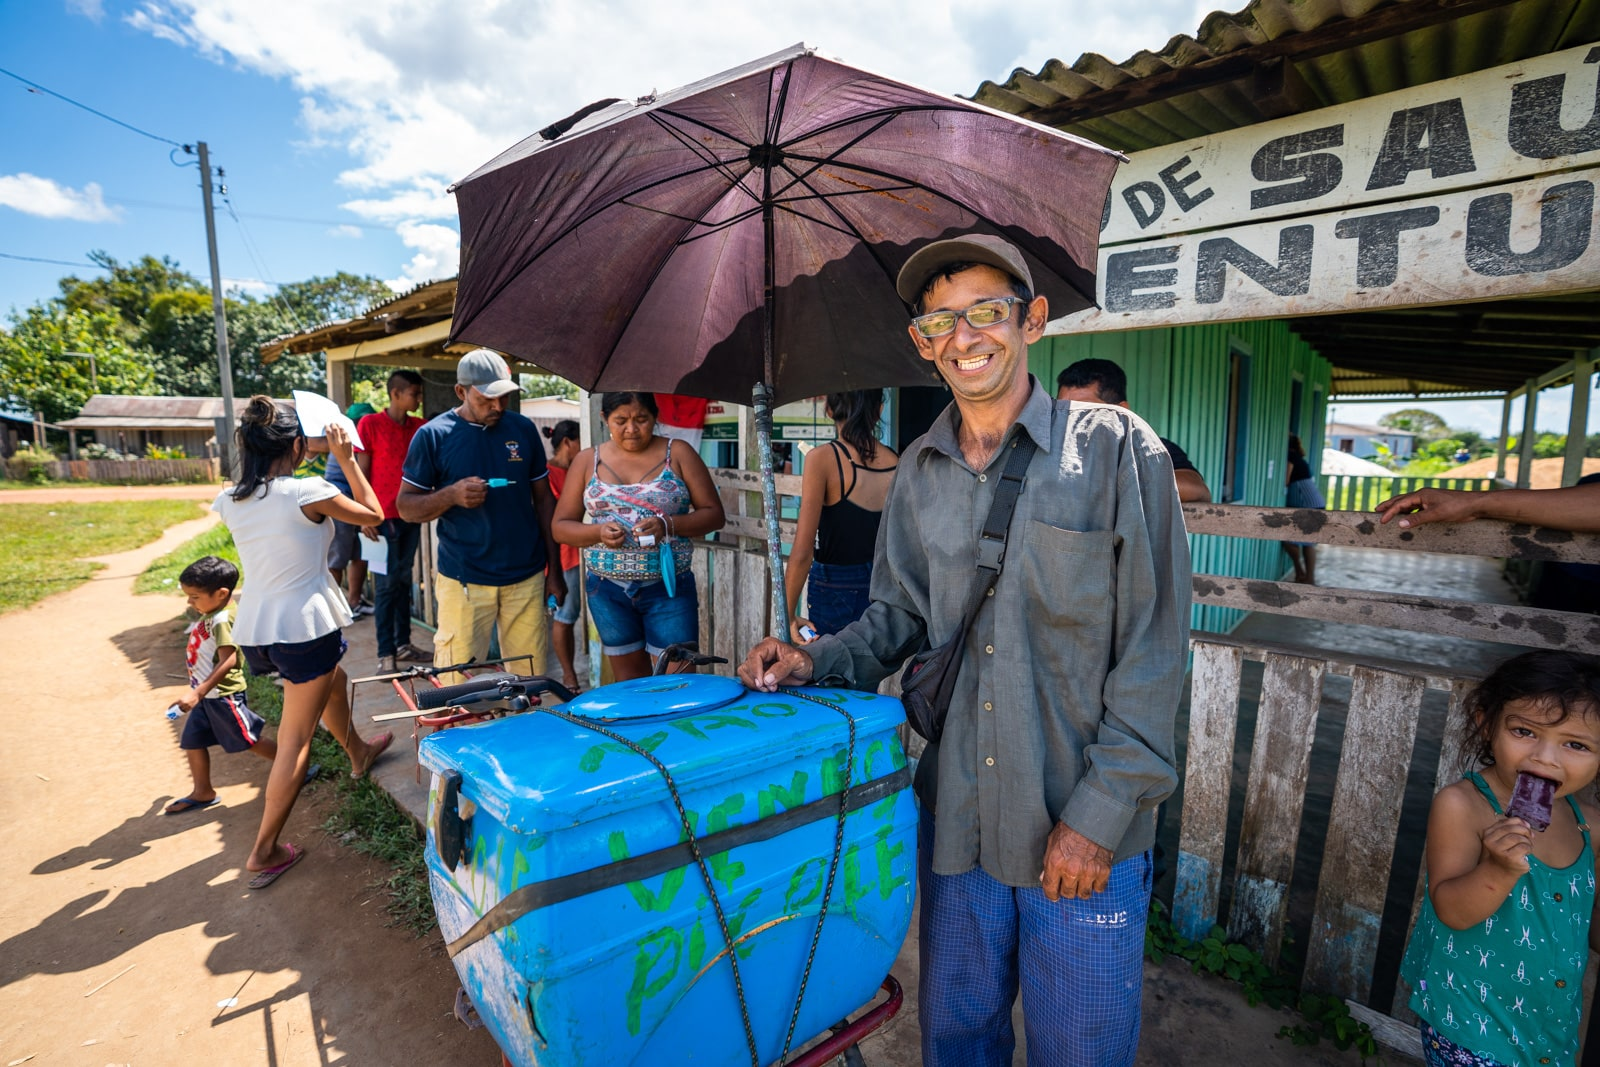 OneSight's mobile eye care clinic in the Brazilian Amazon - Alex the ice cream man - Lost With Purpose travel blog